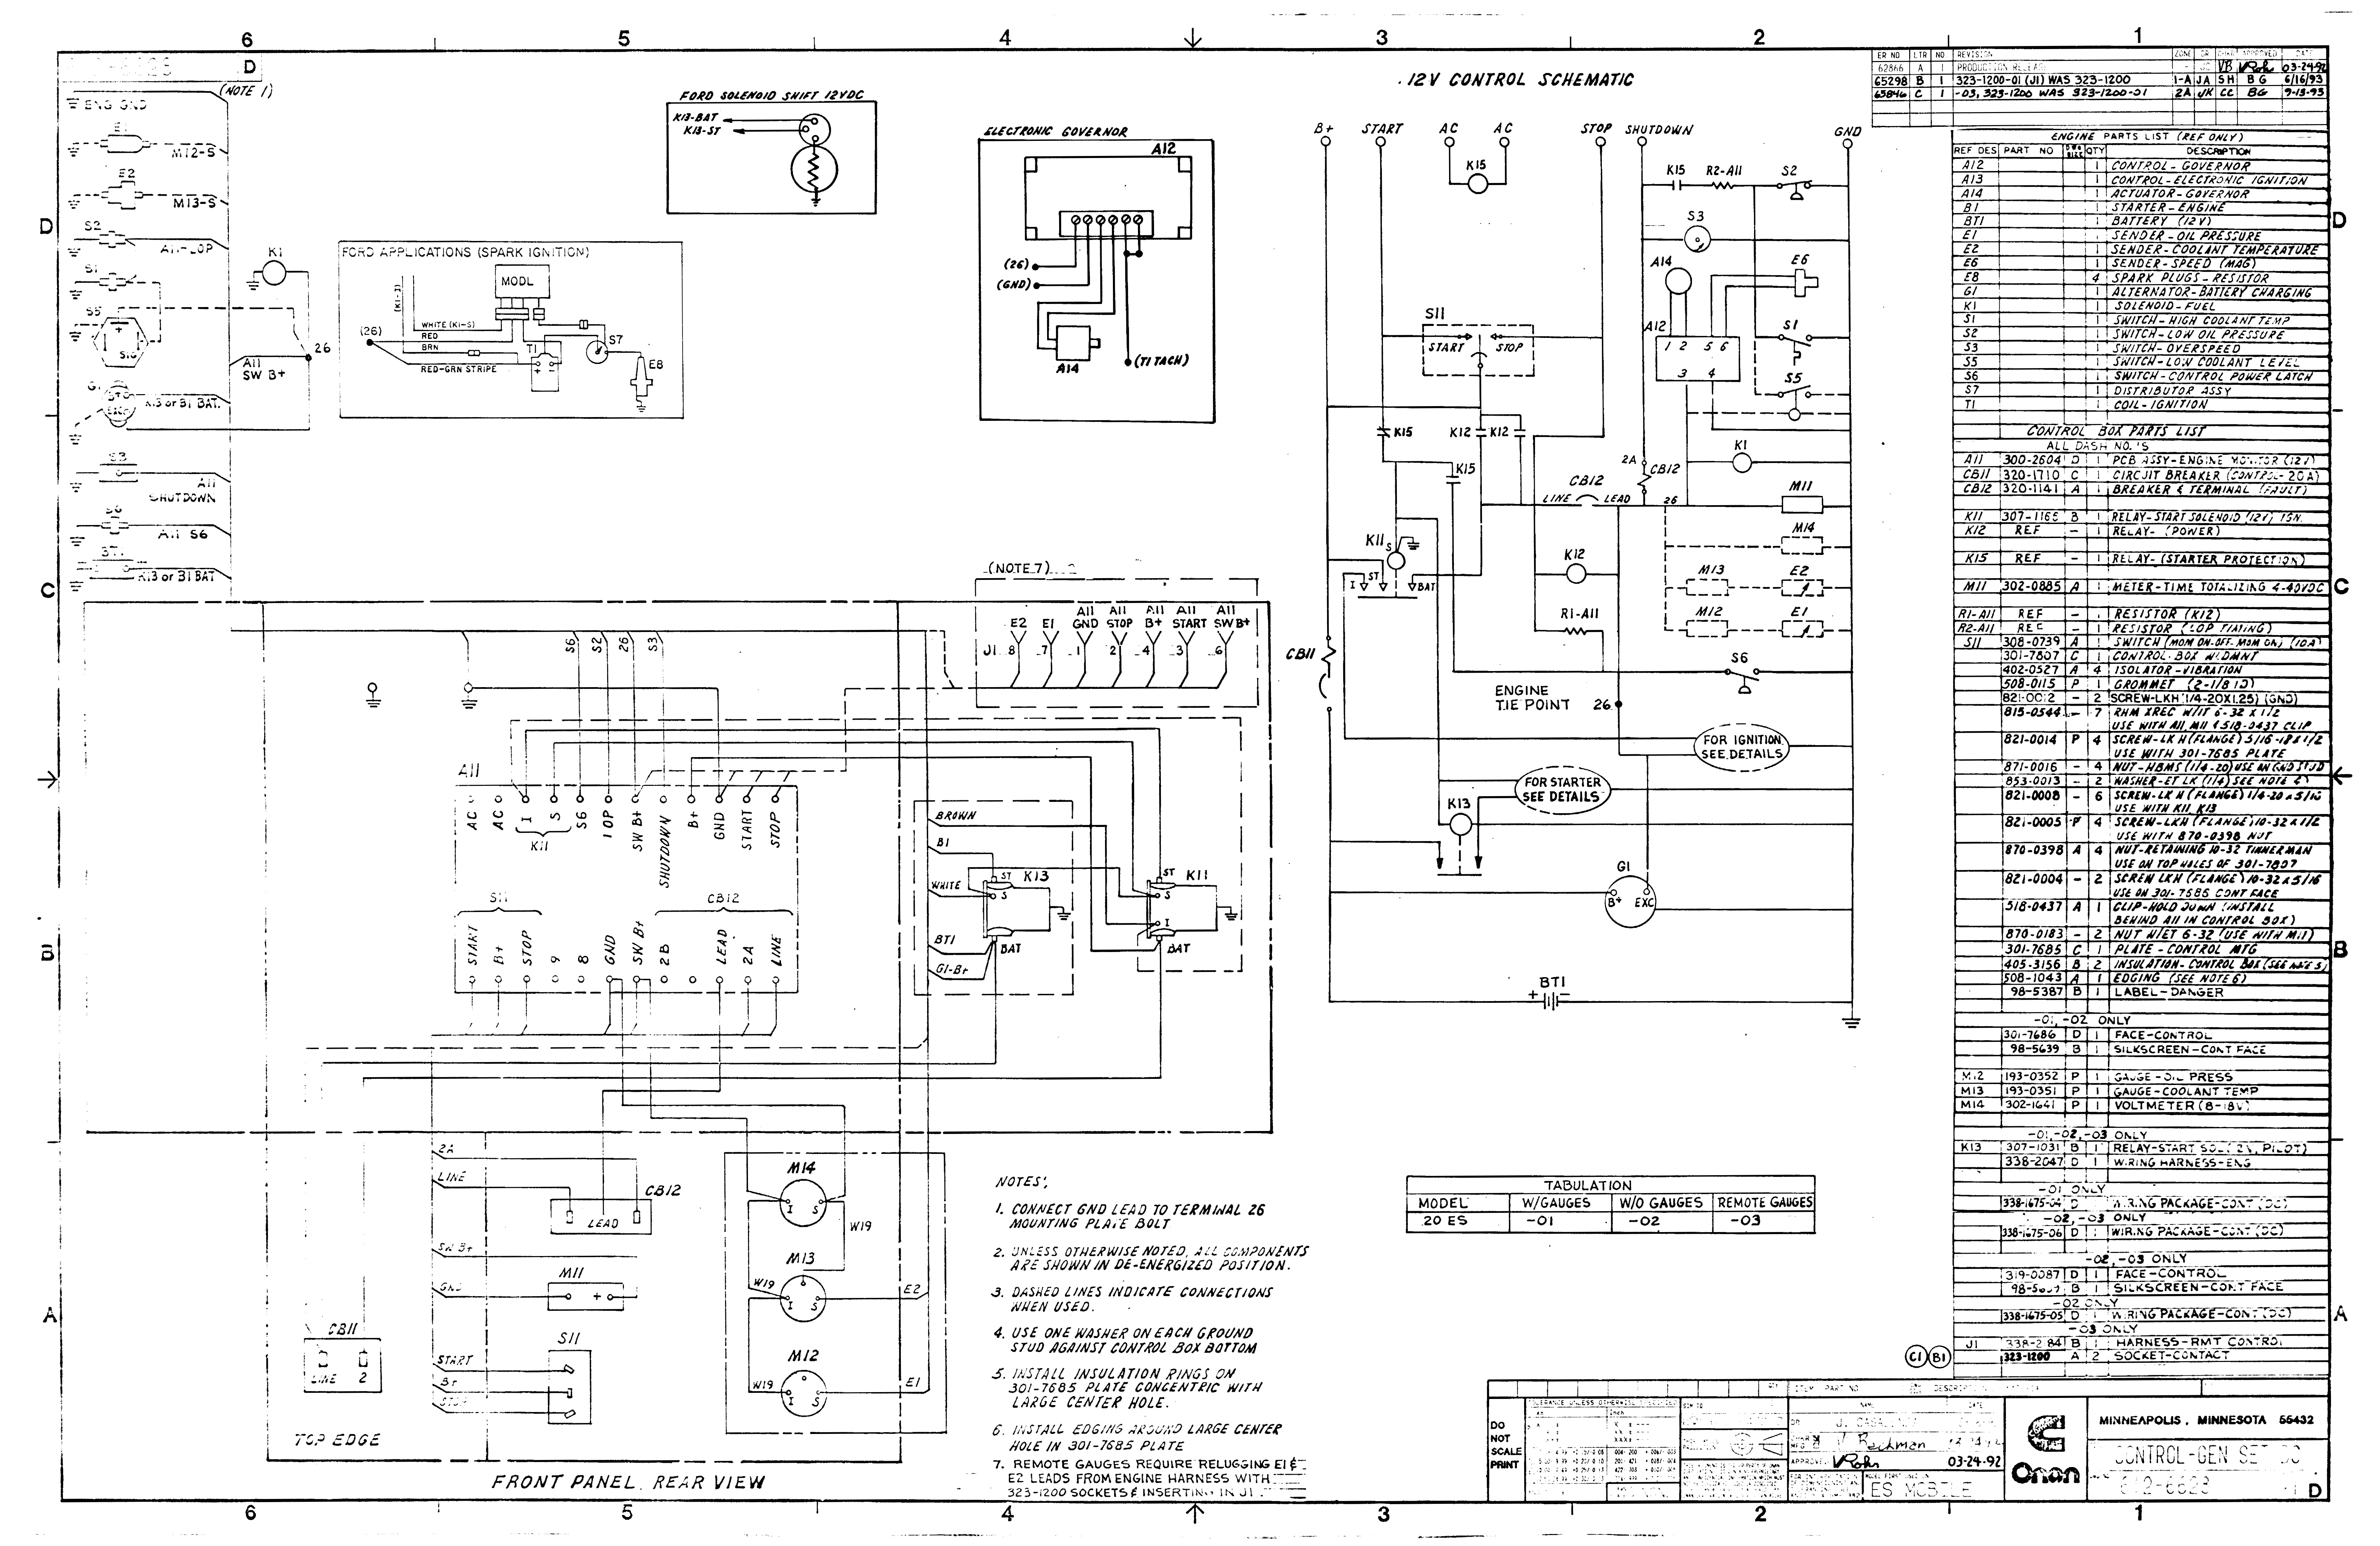 onan generator wiring manual onan image wiring diagram onan stuff on onan generator wiring manual